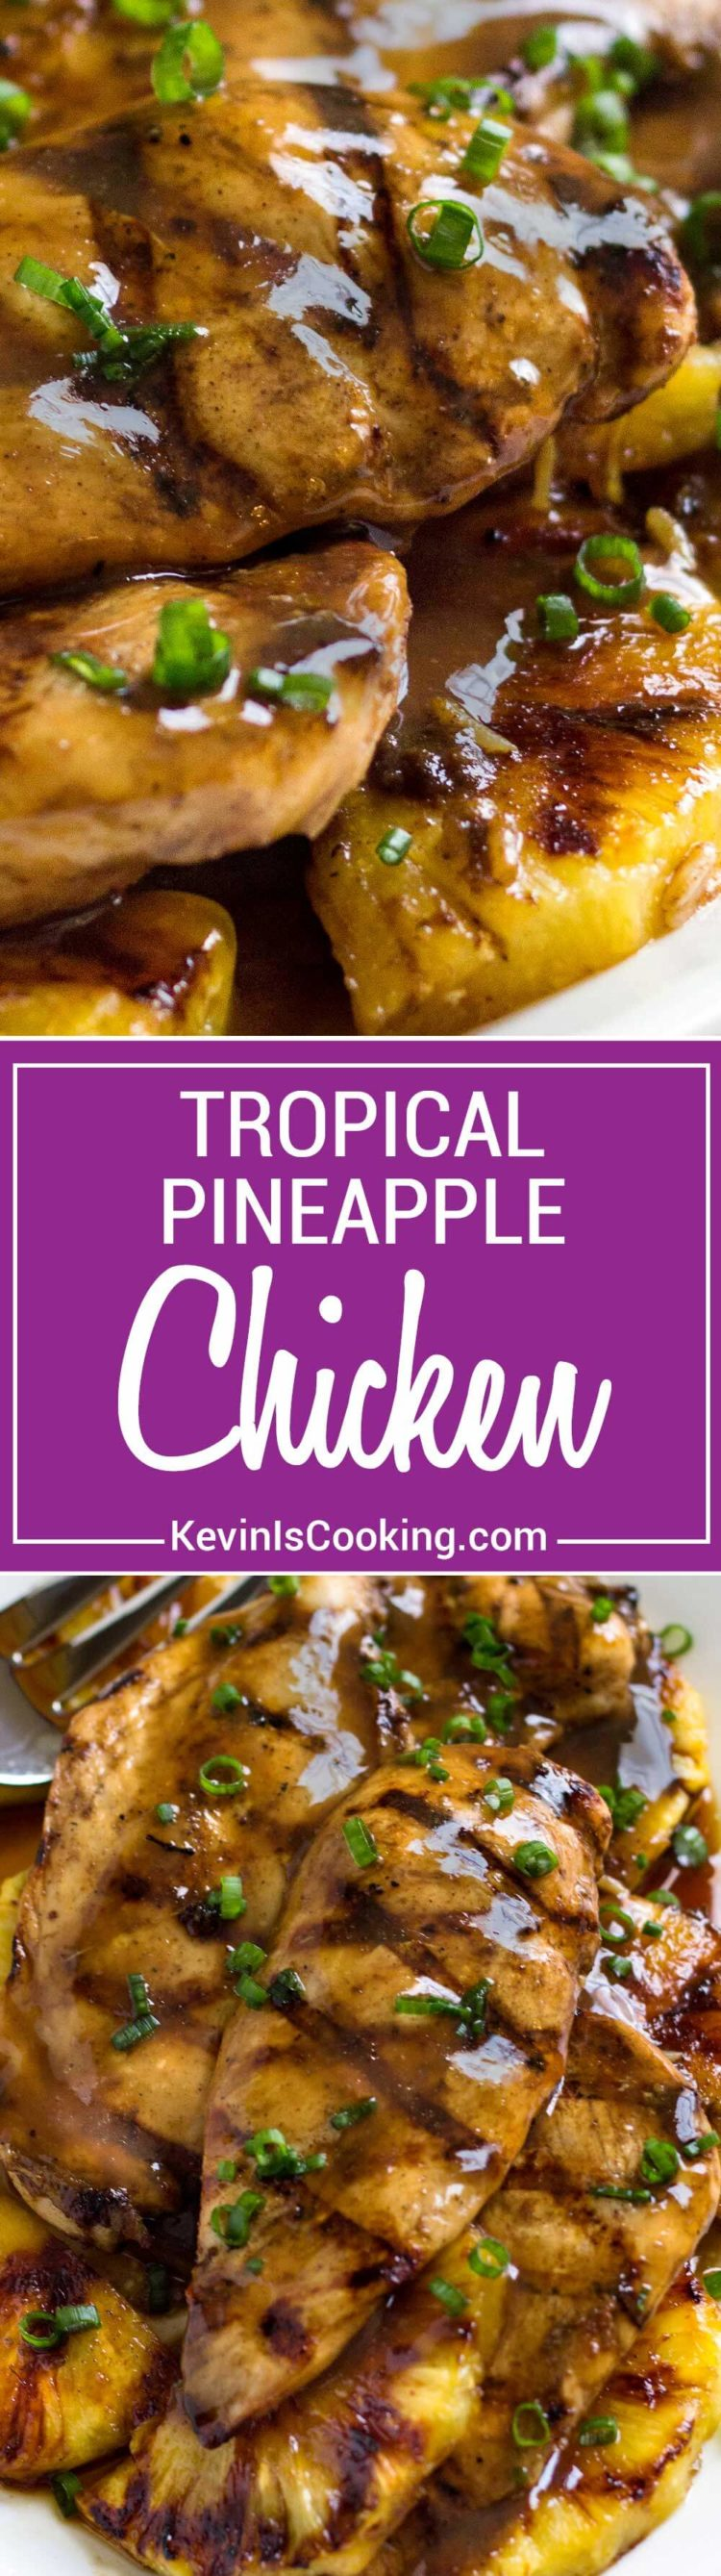 With Caribbean influences this Tropical Pineapple Chicken recipe uses a marinadeturn glaze, reminiscent of a jerk sauce. Grilled or baked recipe versions!